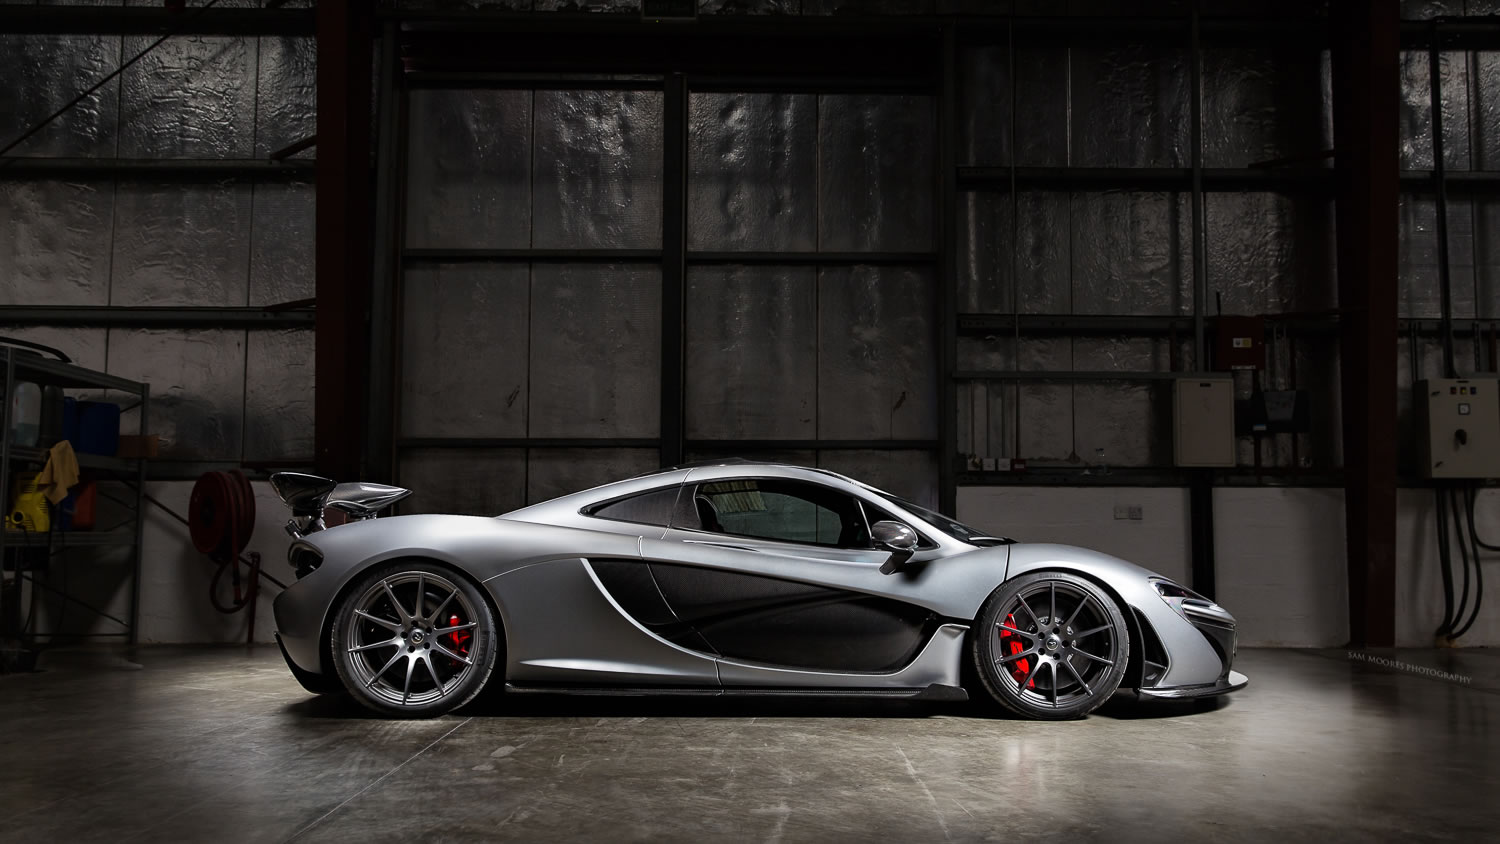 2014 Mclaren P1 Team Galag Side Photo Size 1500 X 844